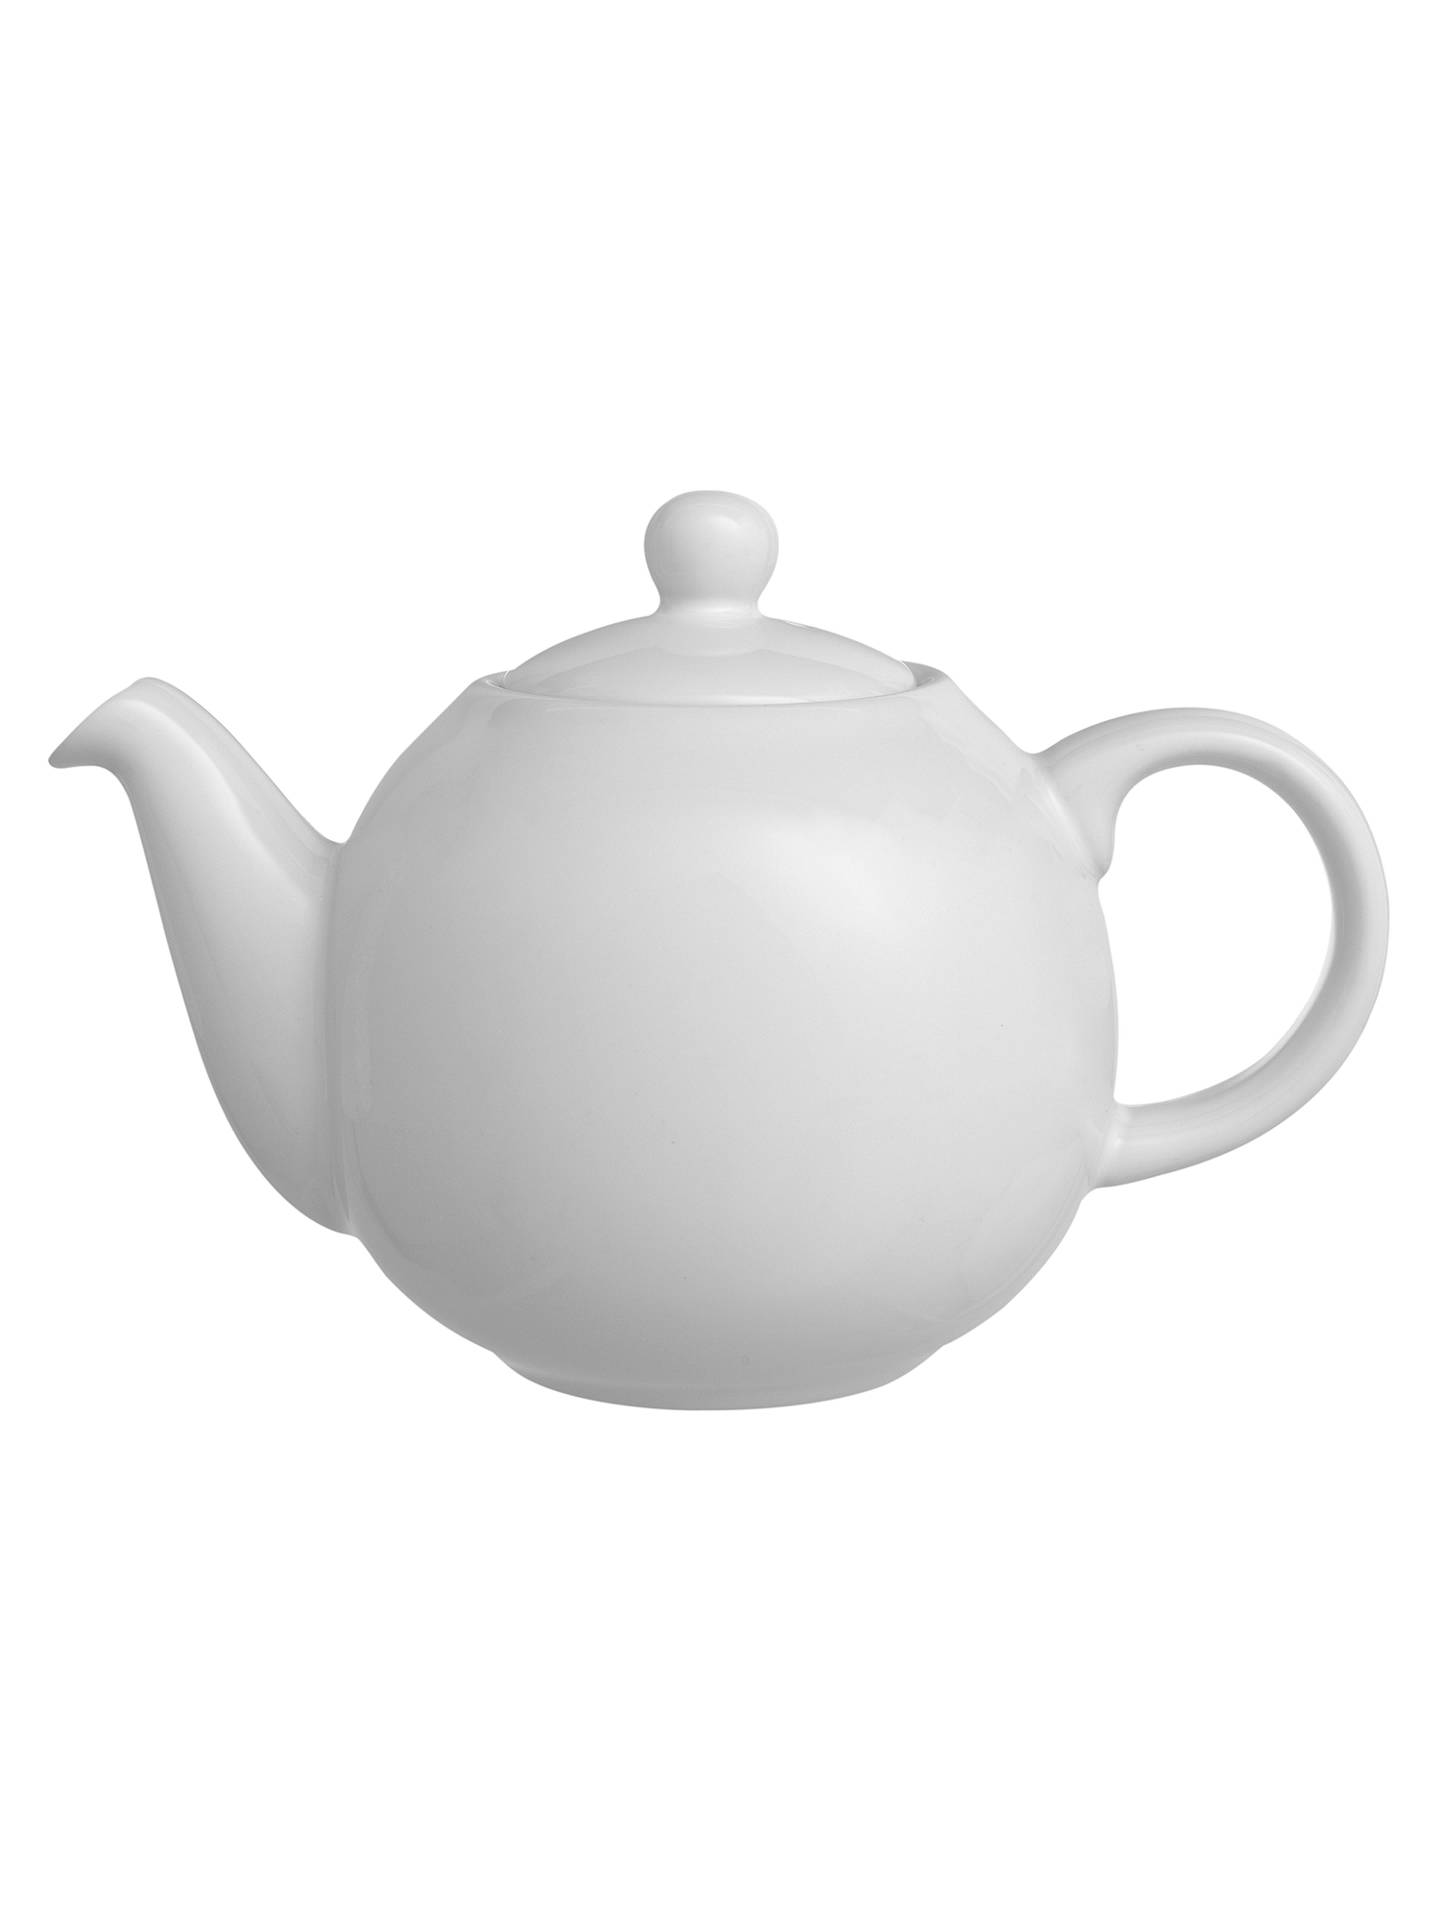 BuyLondon Pottery Globe 2 Cup Teapot, White, 500ml Online at johnlewis.com